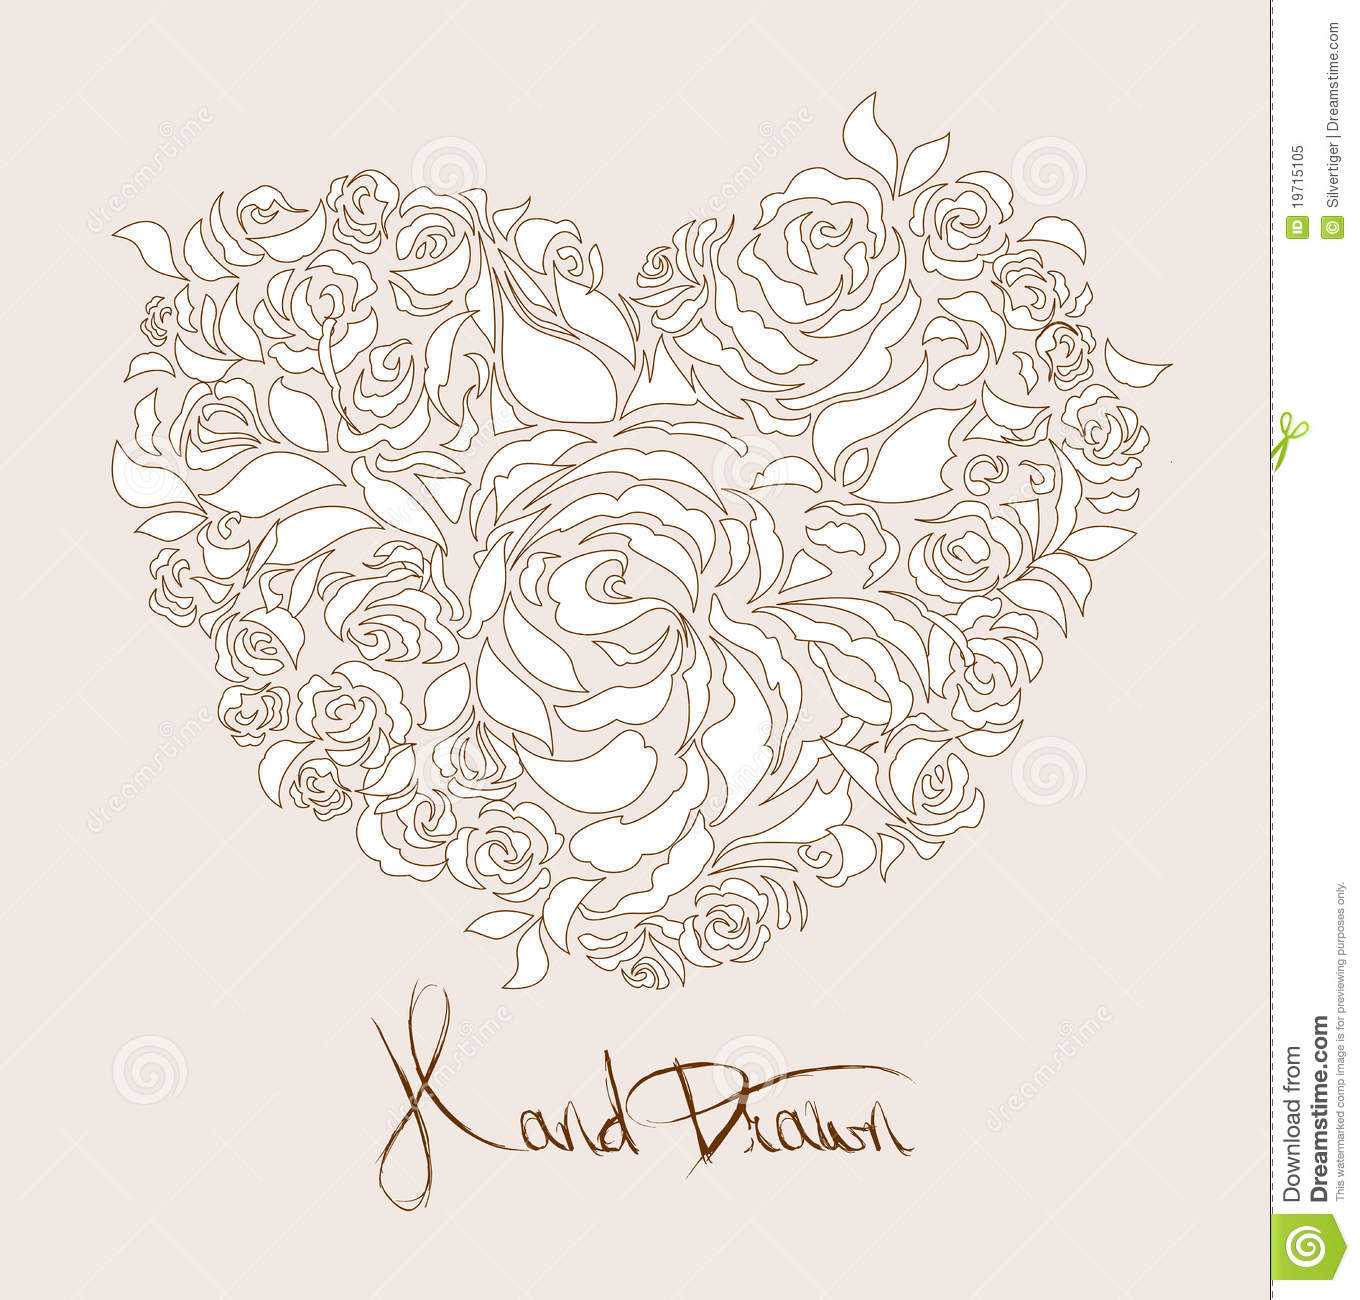 Floral wedding / anniversary card design - heart shaped rose flower ...